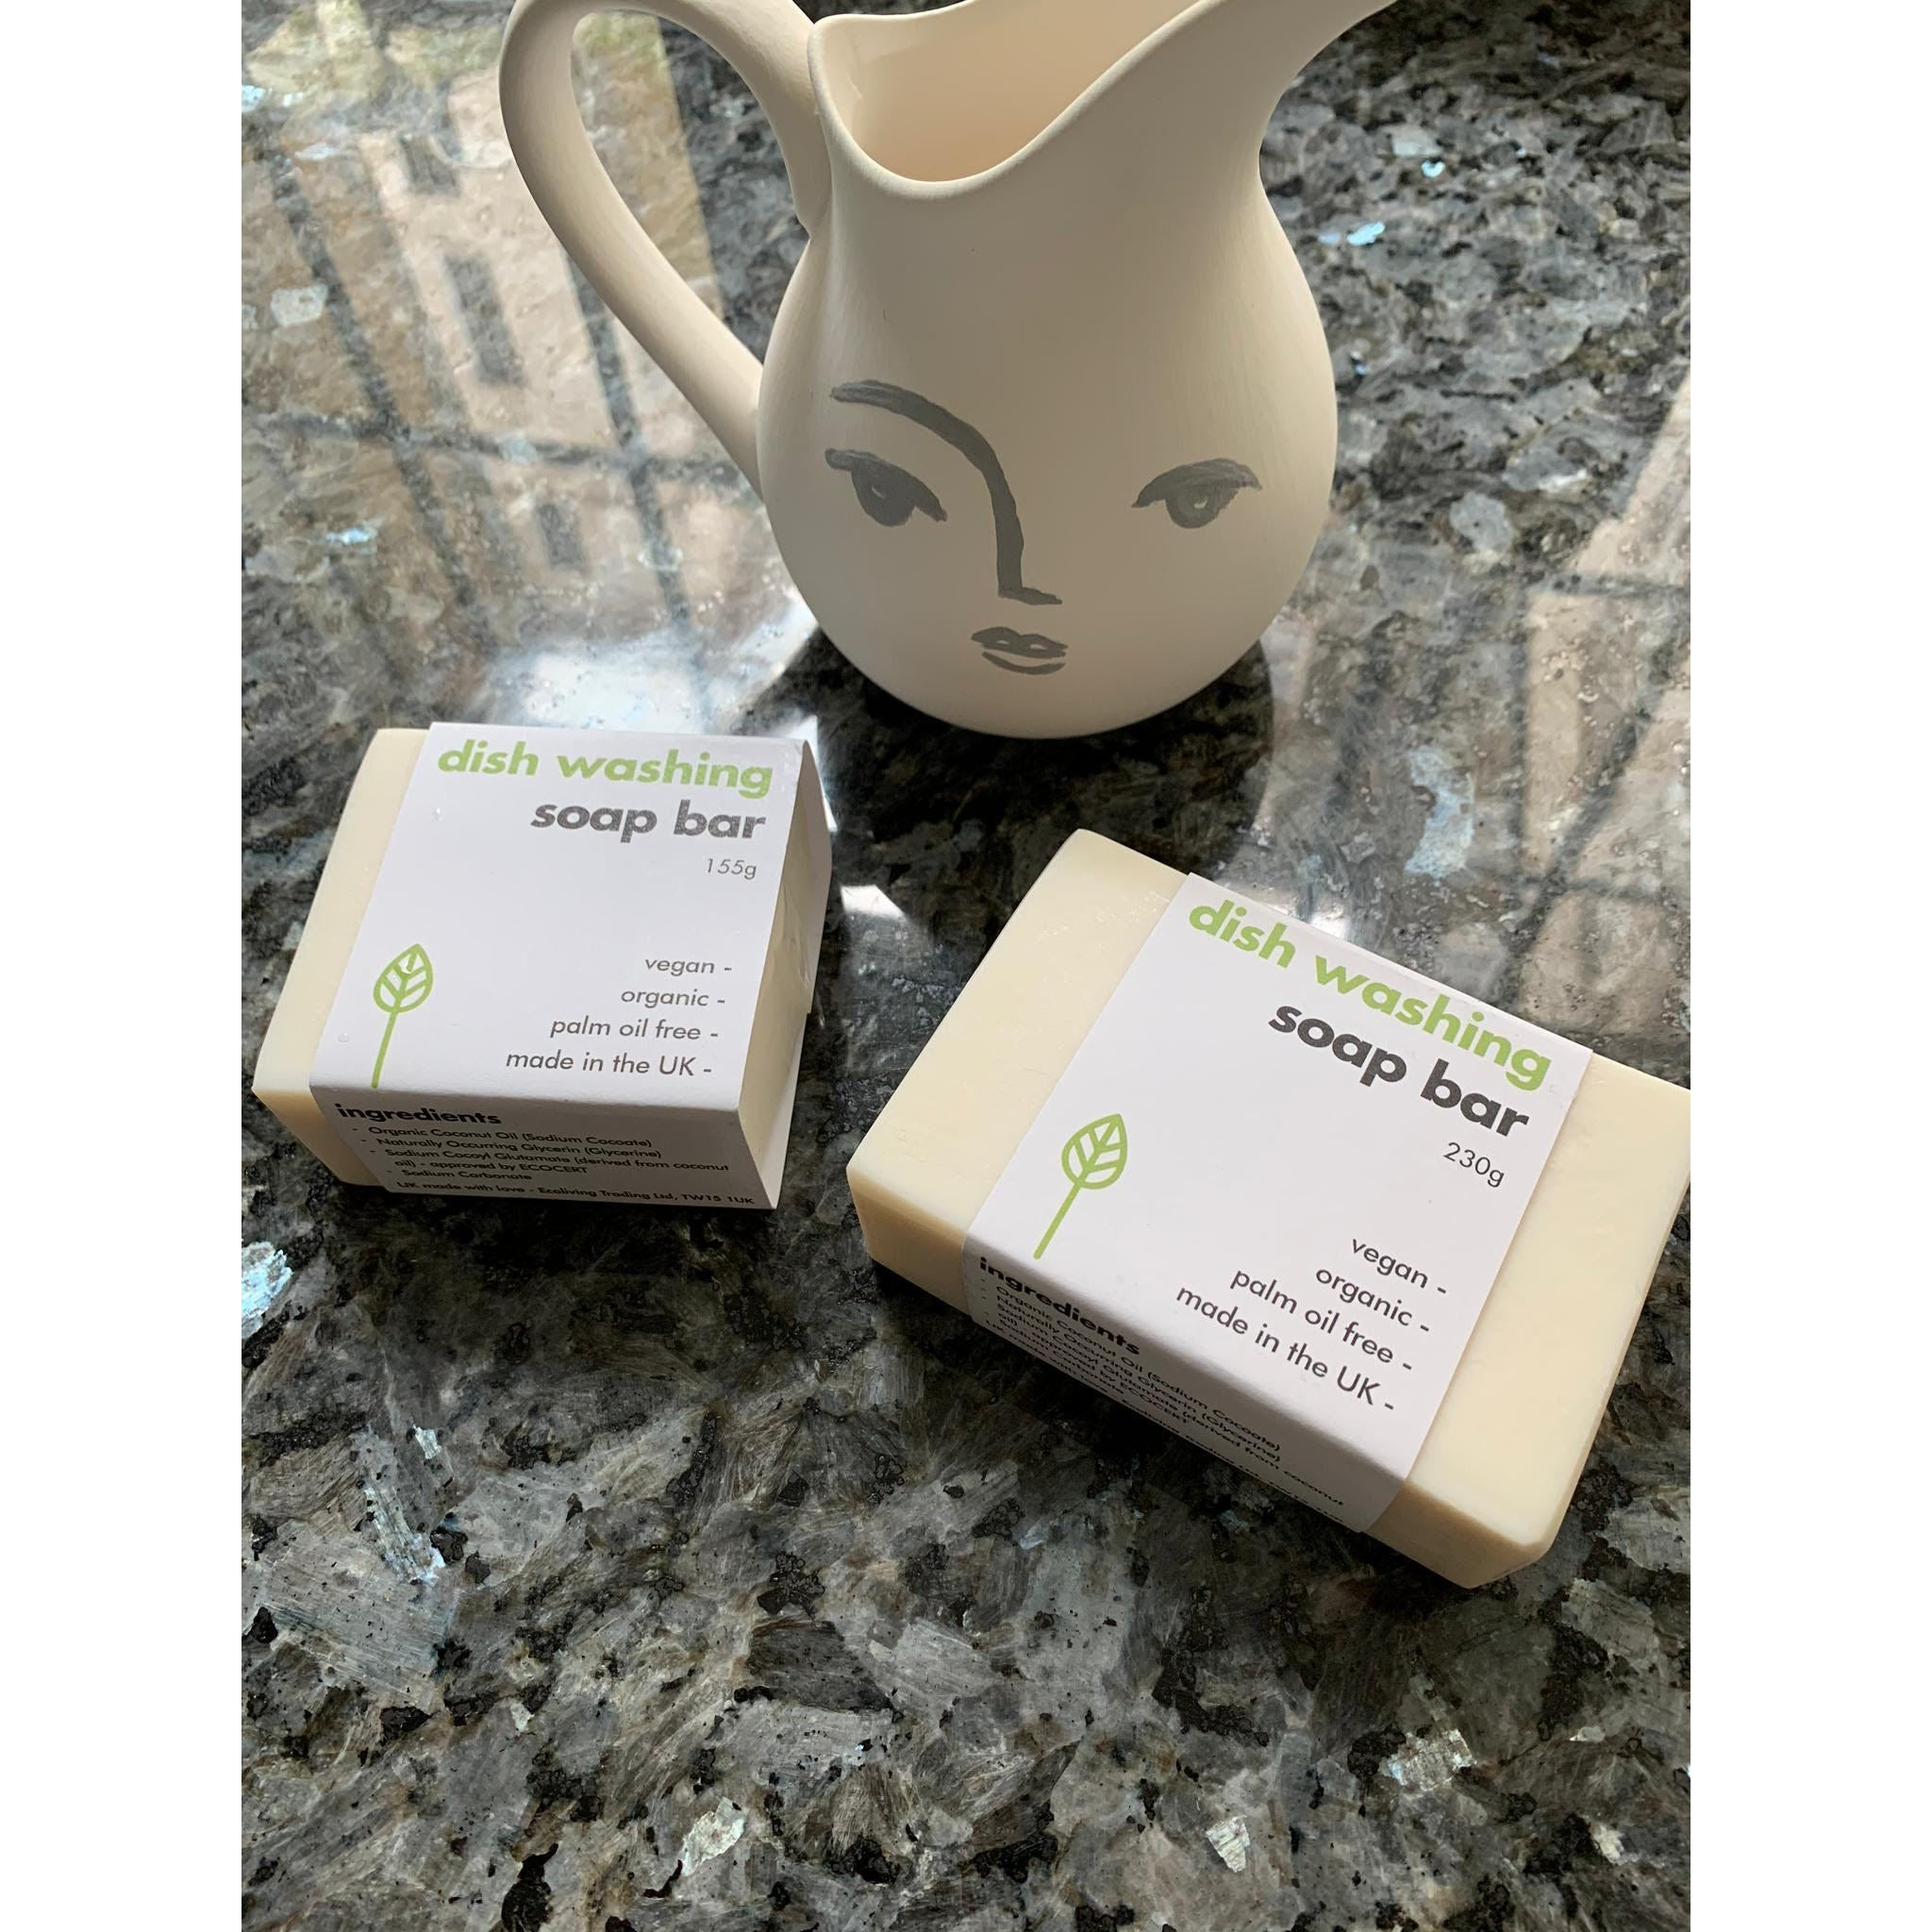 Washing-Up Soap Bar 155g, biodegradable, plastic free and contains No Palm Oil approved by ECOCERT - natoorio